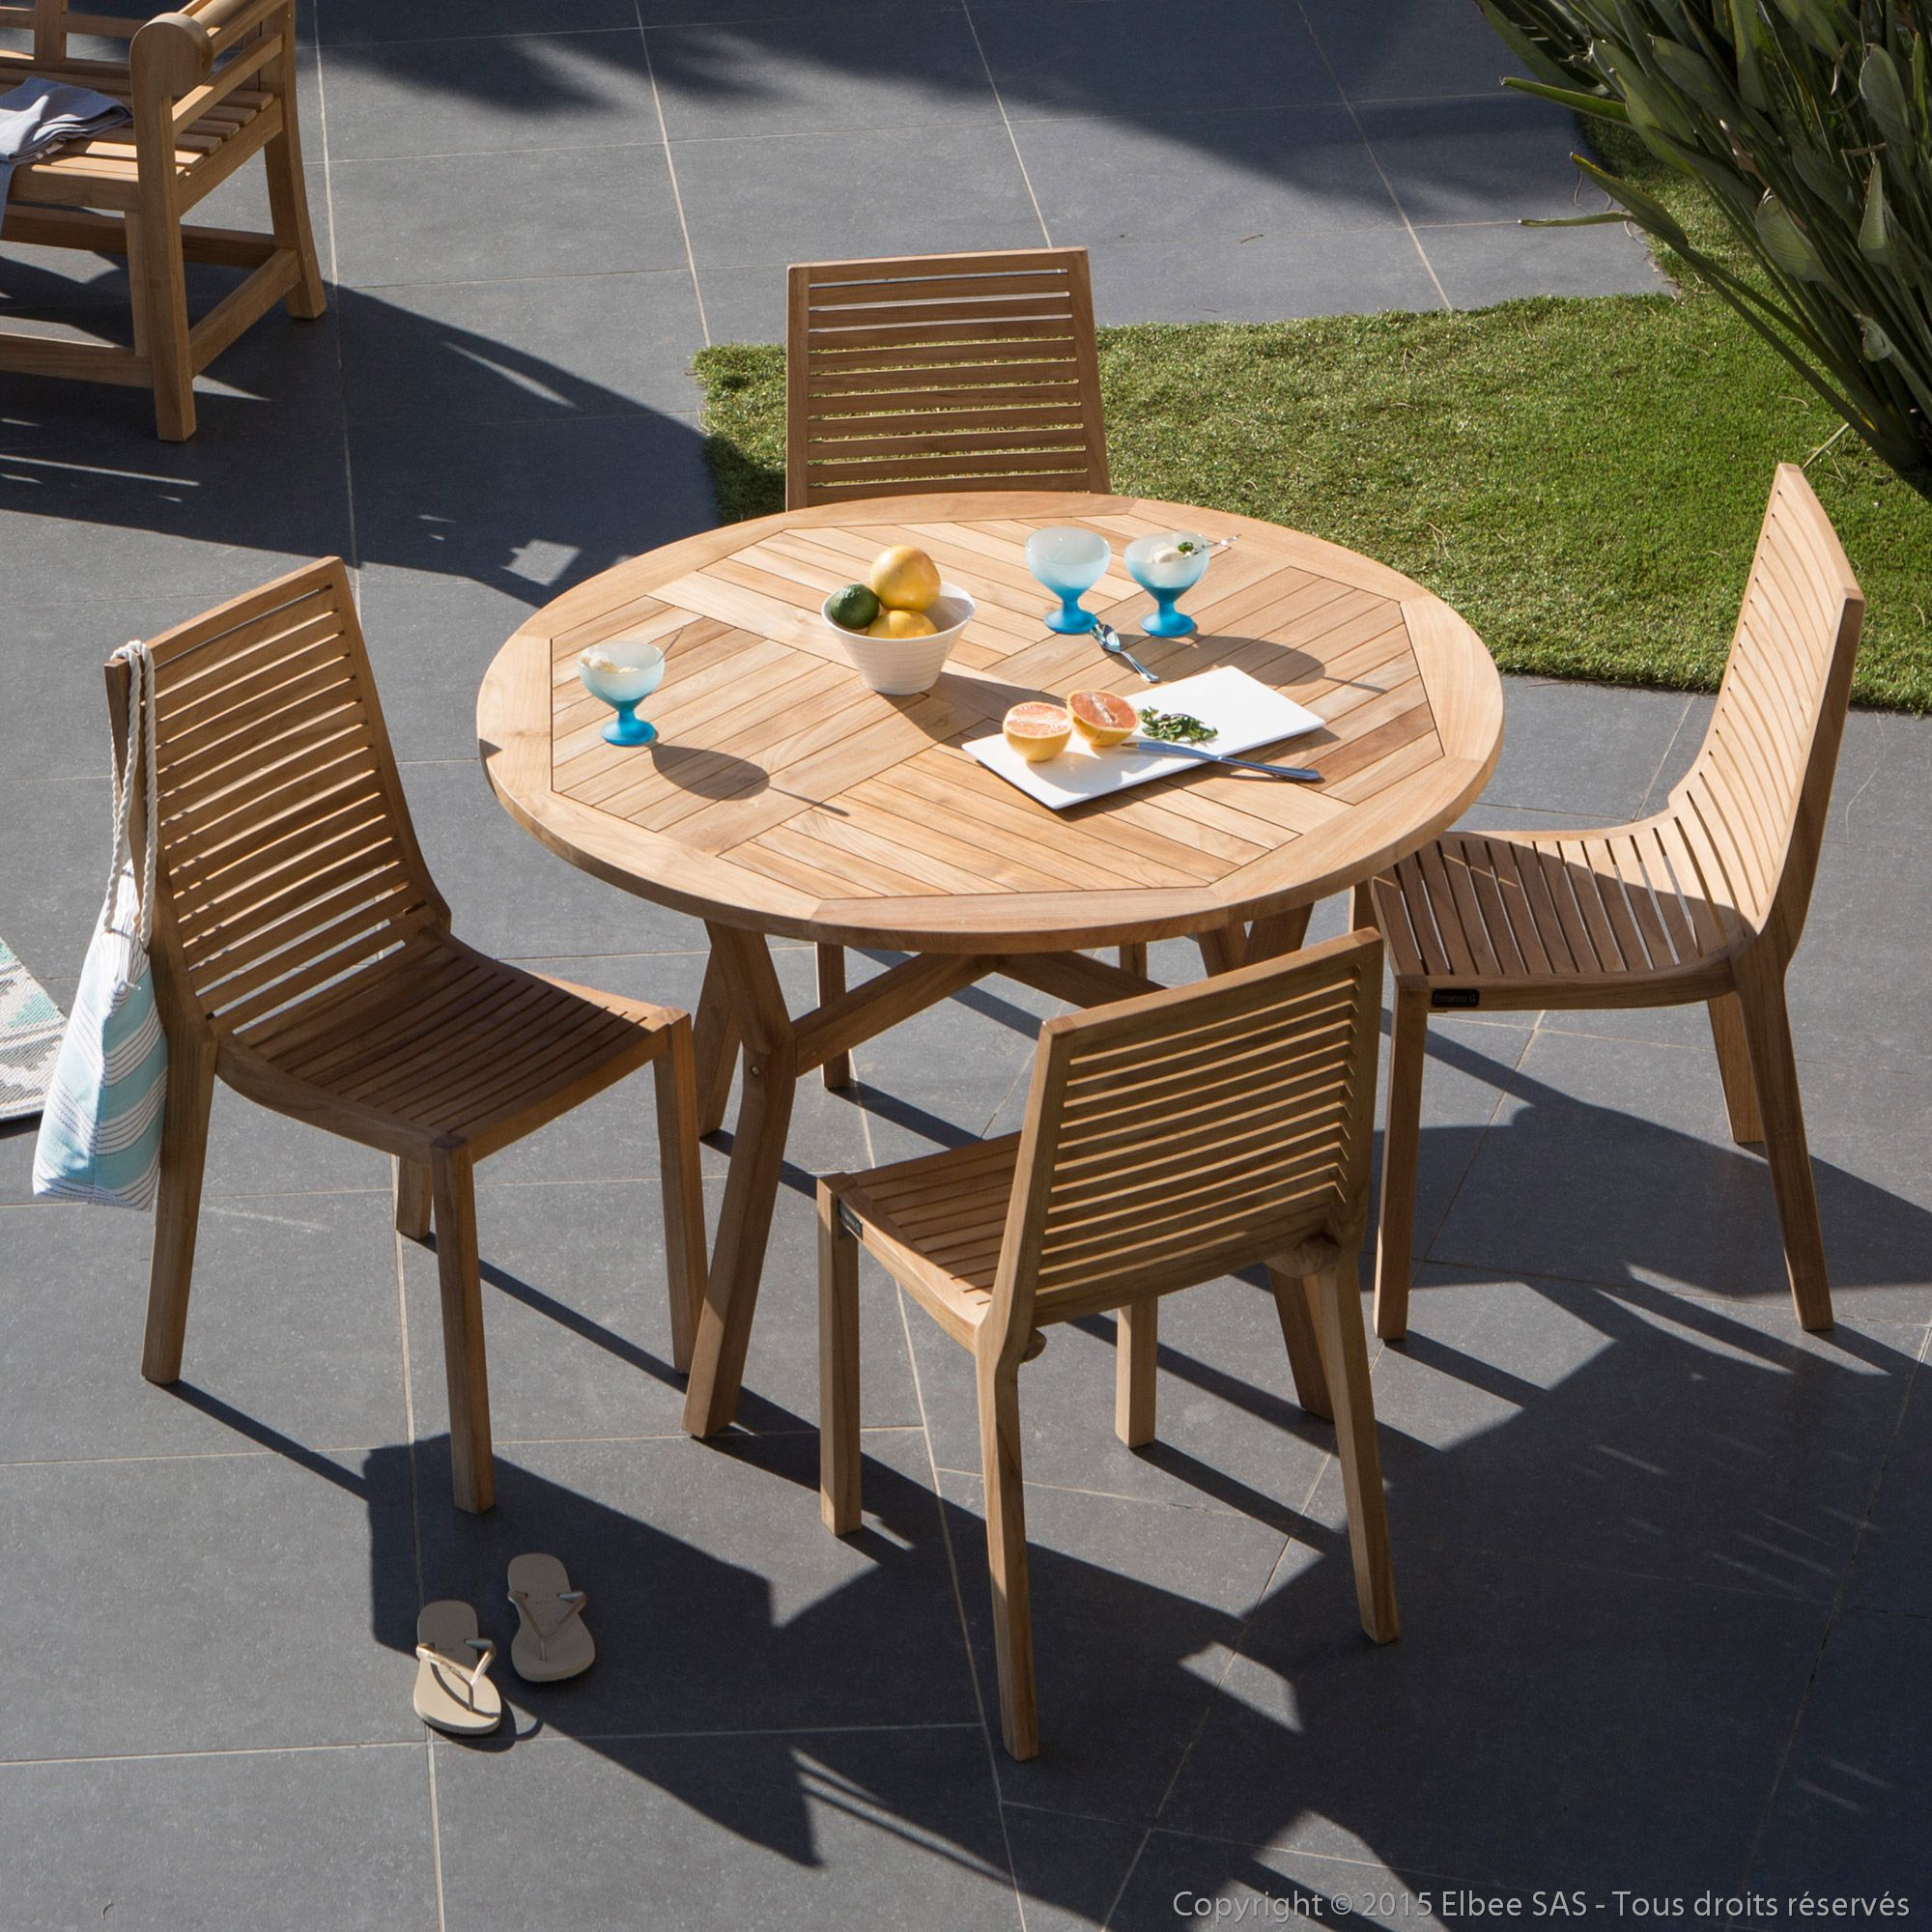 Salon de jardin 4 places en teck brut : 1 table ronde 120cm ...